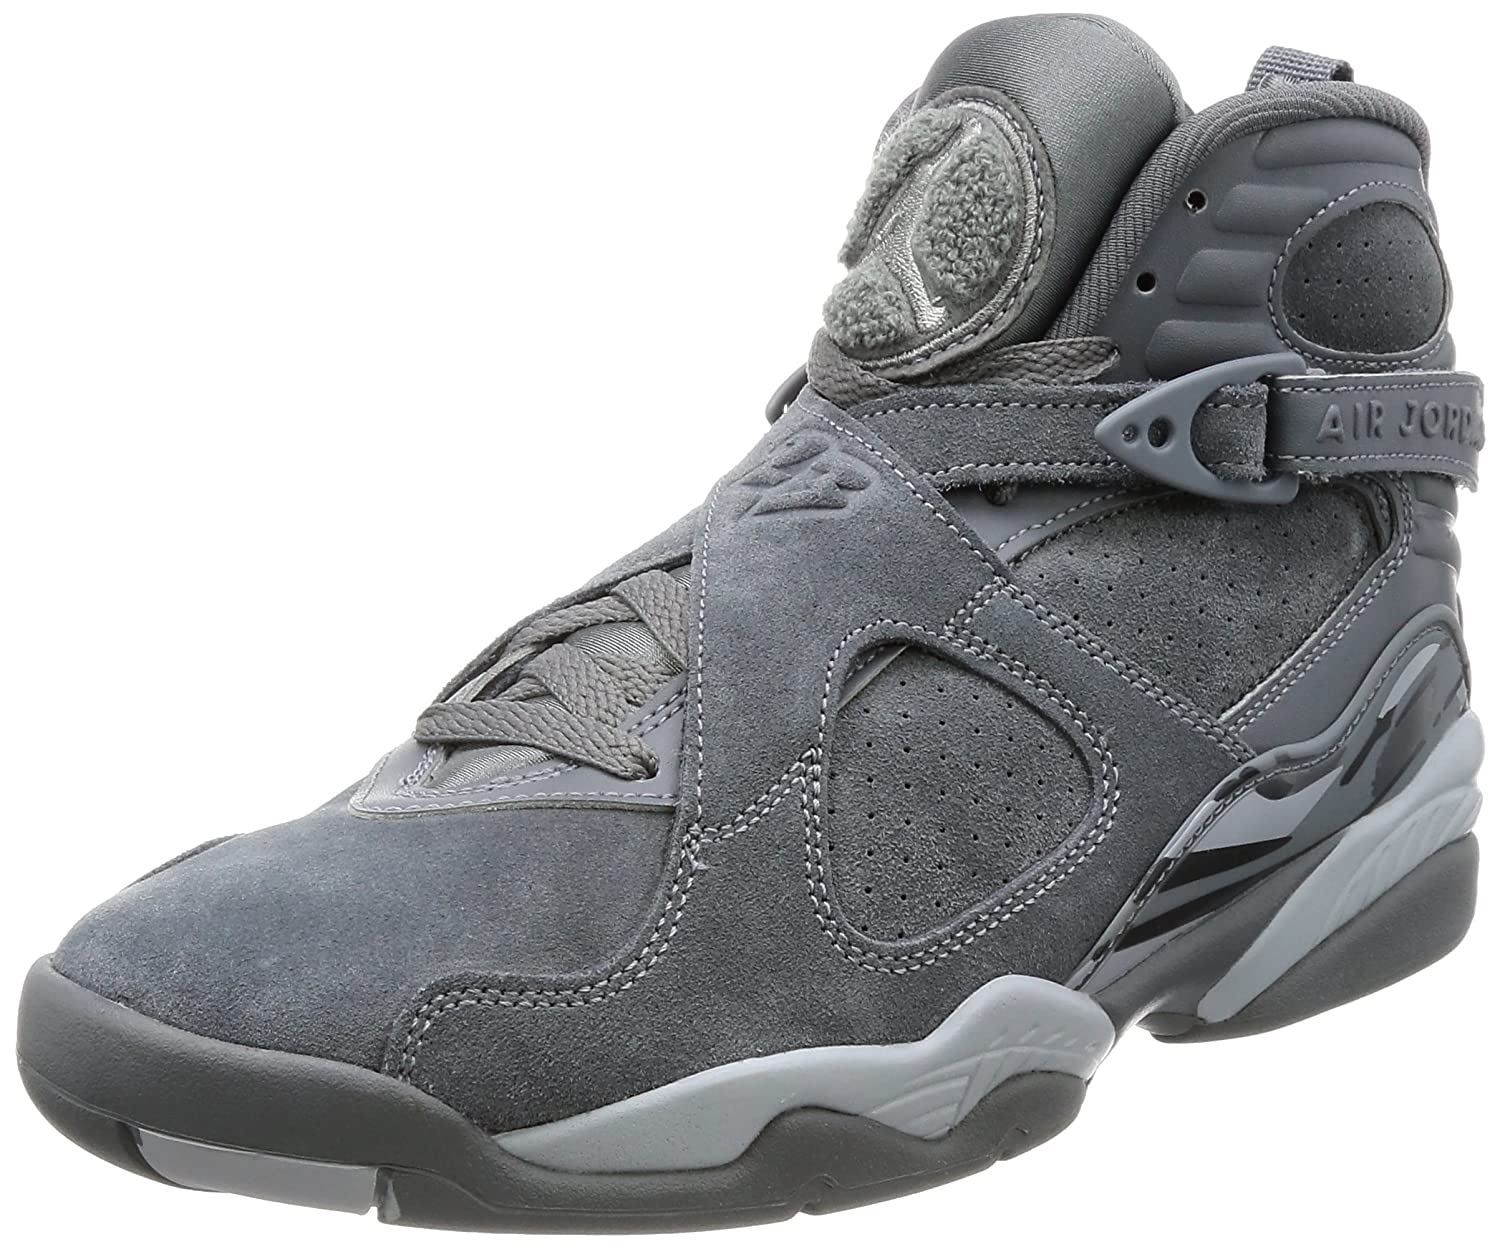 super populaire 80242 3fe95 Air Jordan 8 Retro - 305381 014